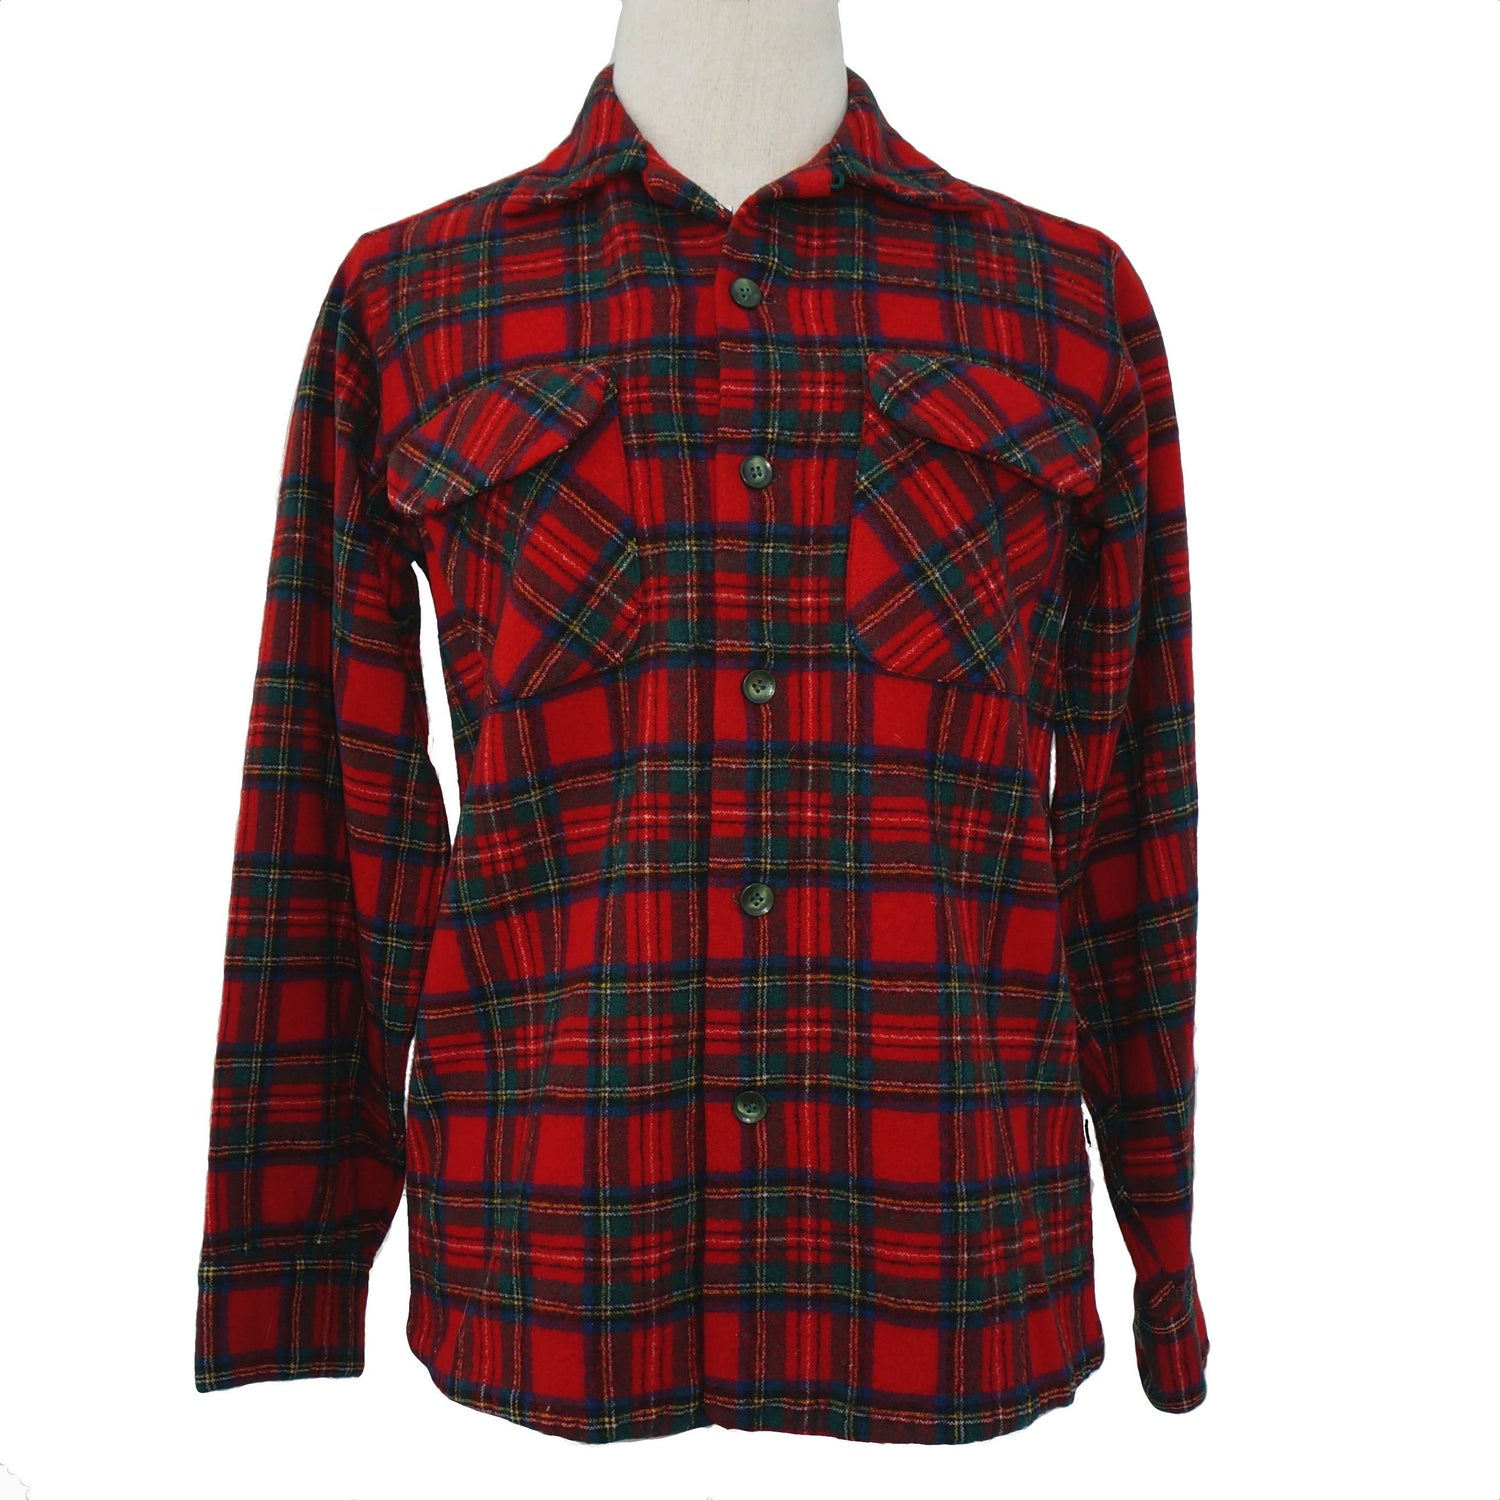 """Image of Pendleton 1950s Red Wool Plaid Shirt, """"Made in Portland"""" Label"""